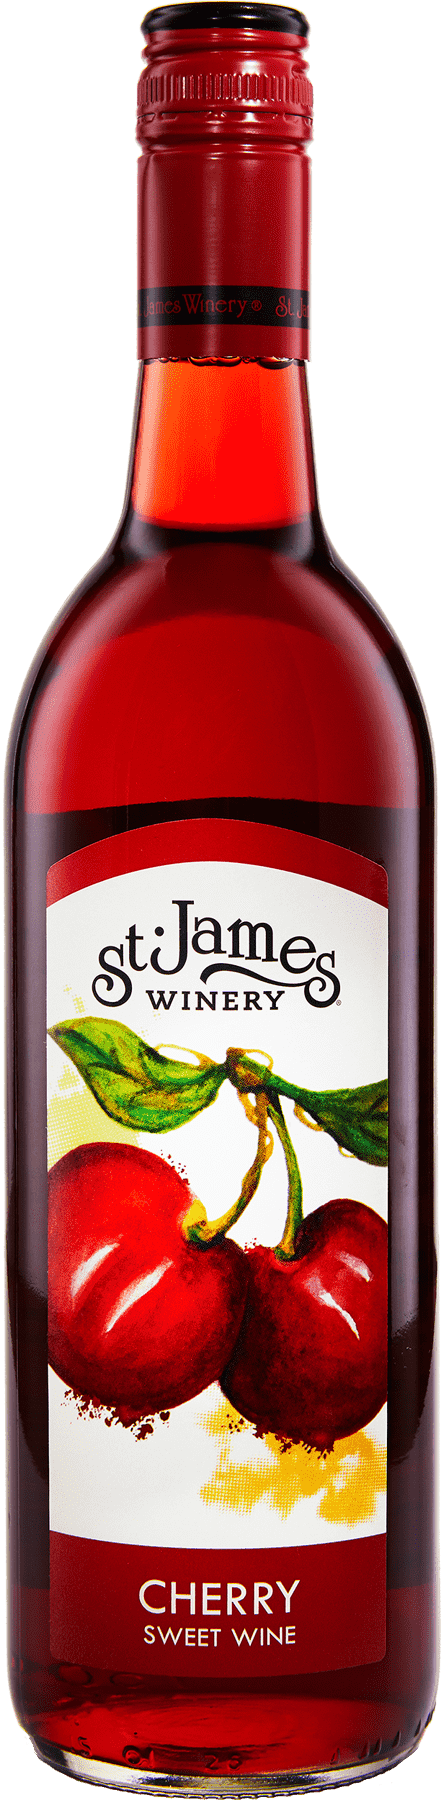 Cherry Wine - Fruit Wines - St. James Winery